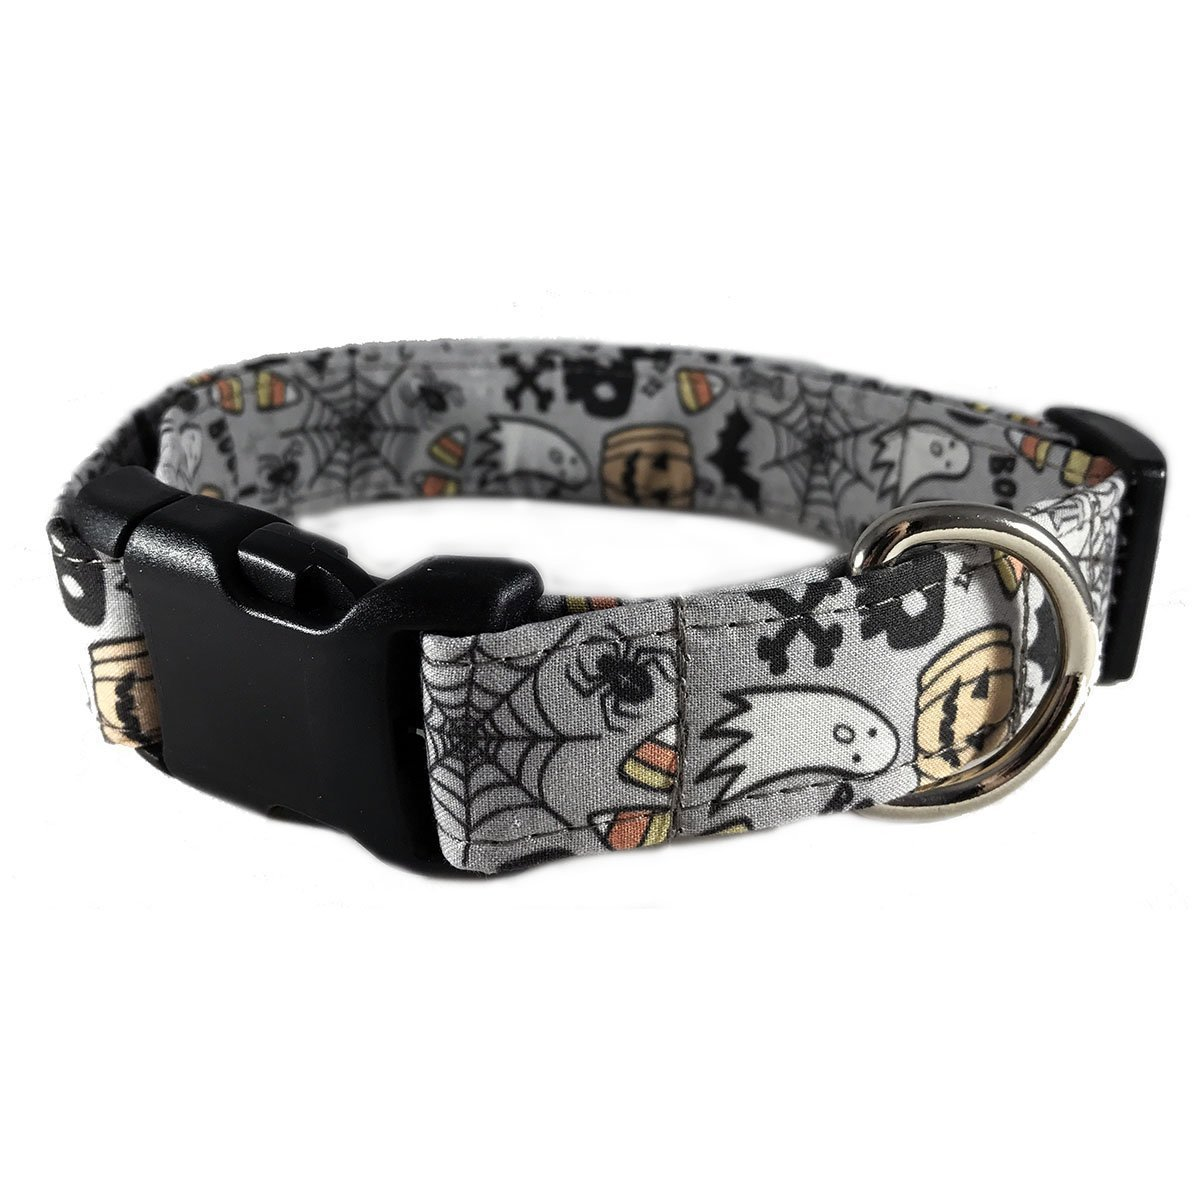 Halloween Dog or Cat Collar for Pets Size Small 3/4'' Wide and 10-14'' Long by Oh My Paw'd